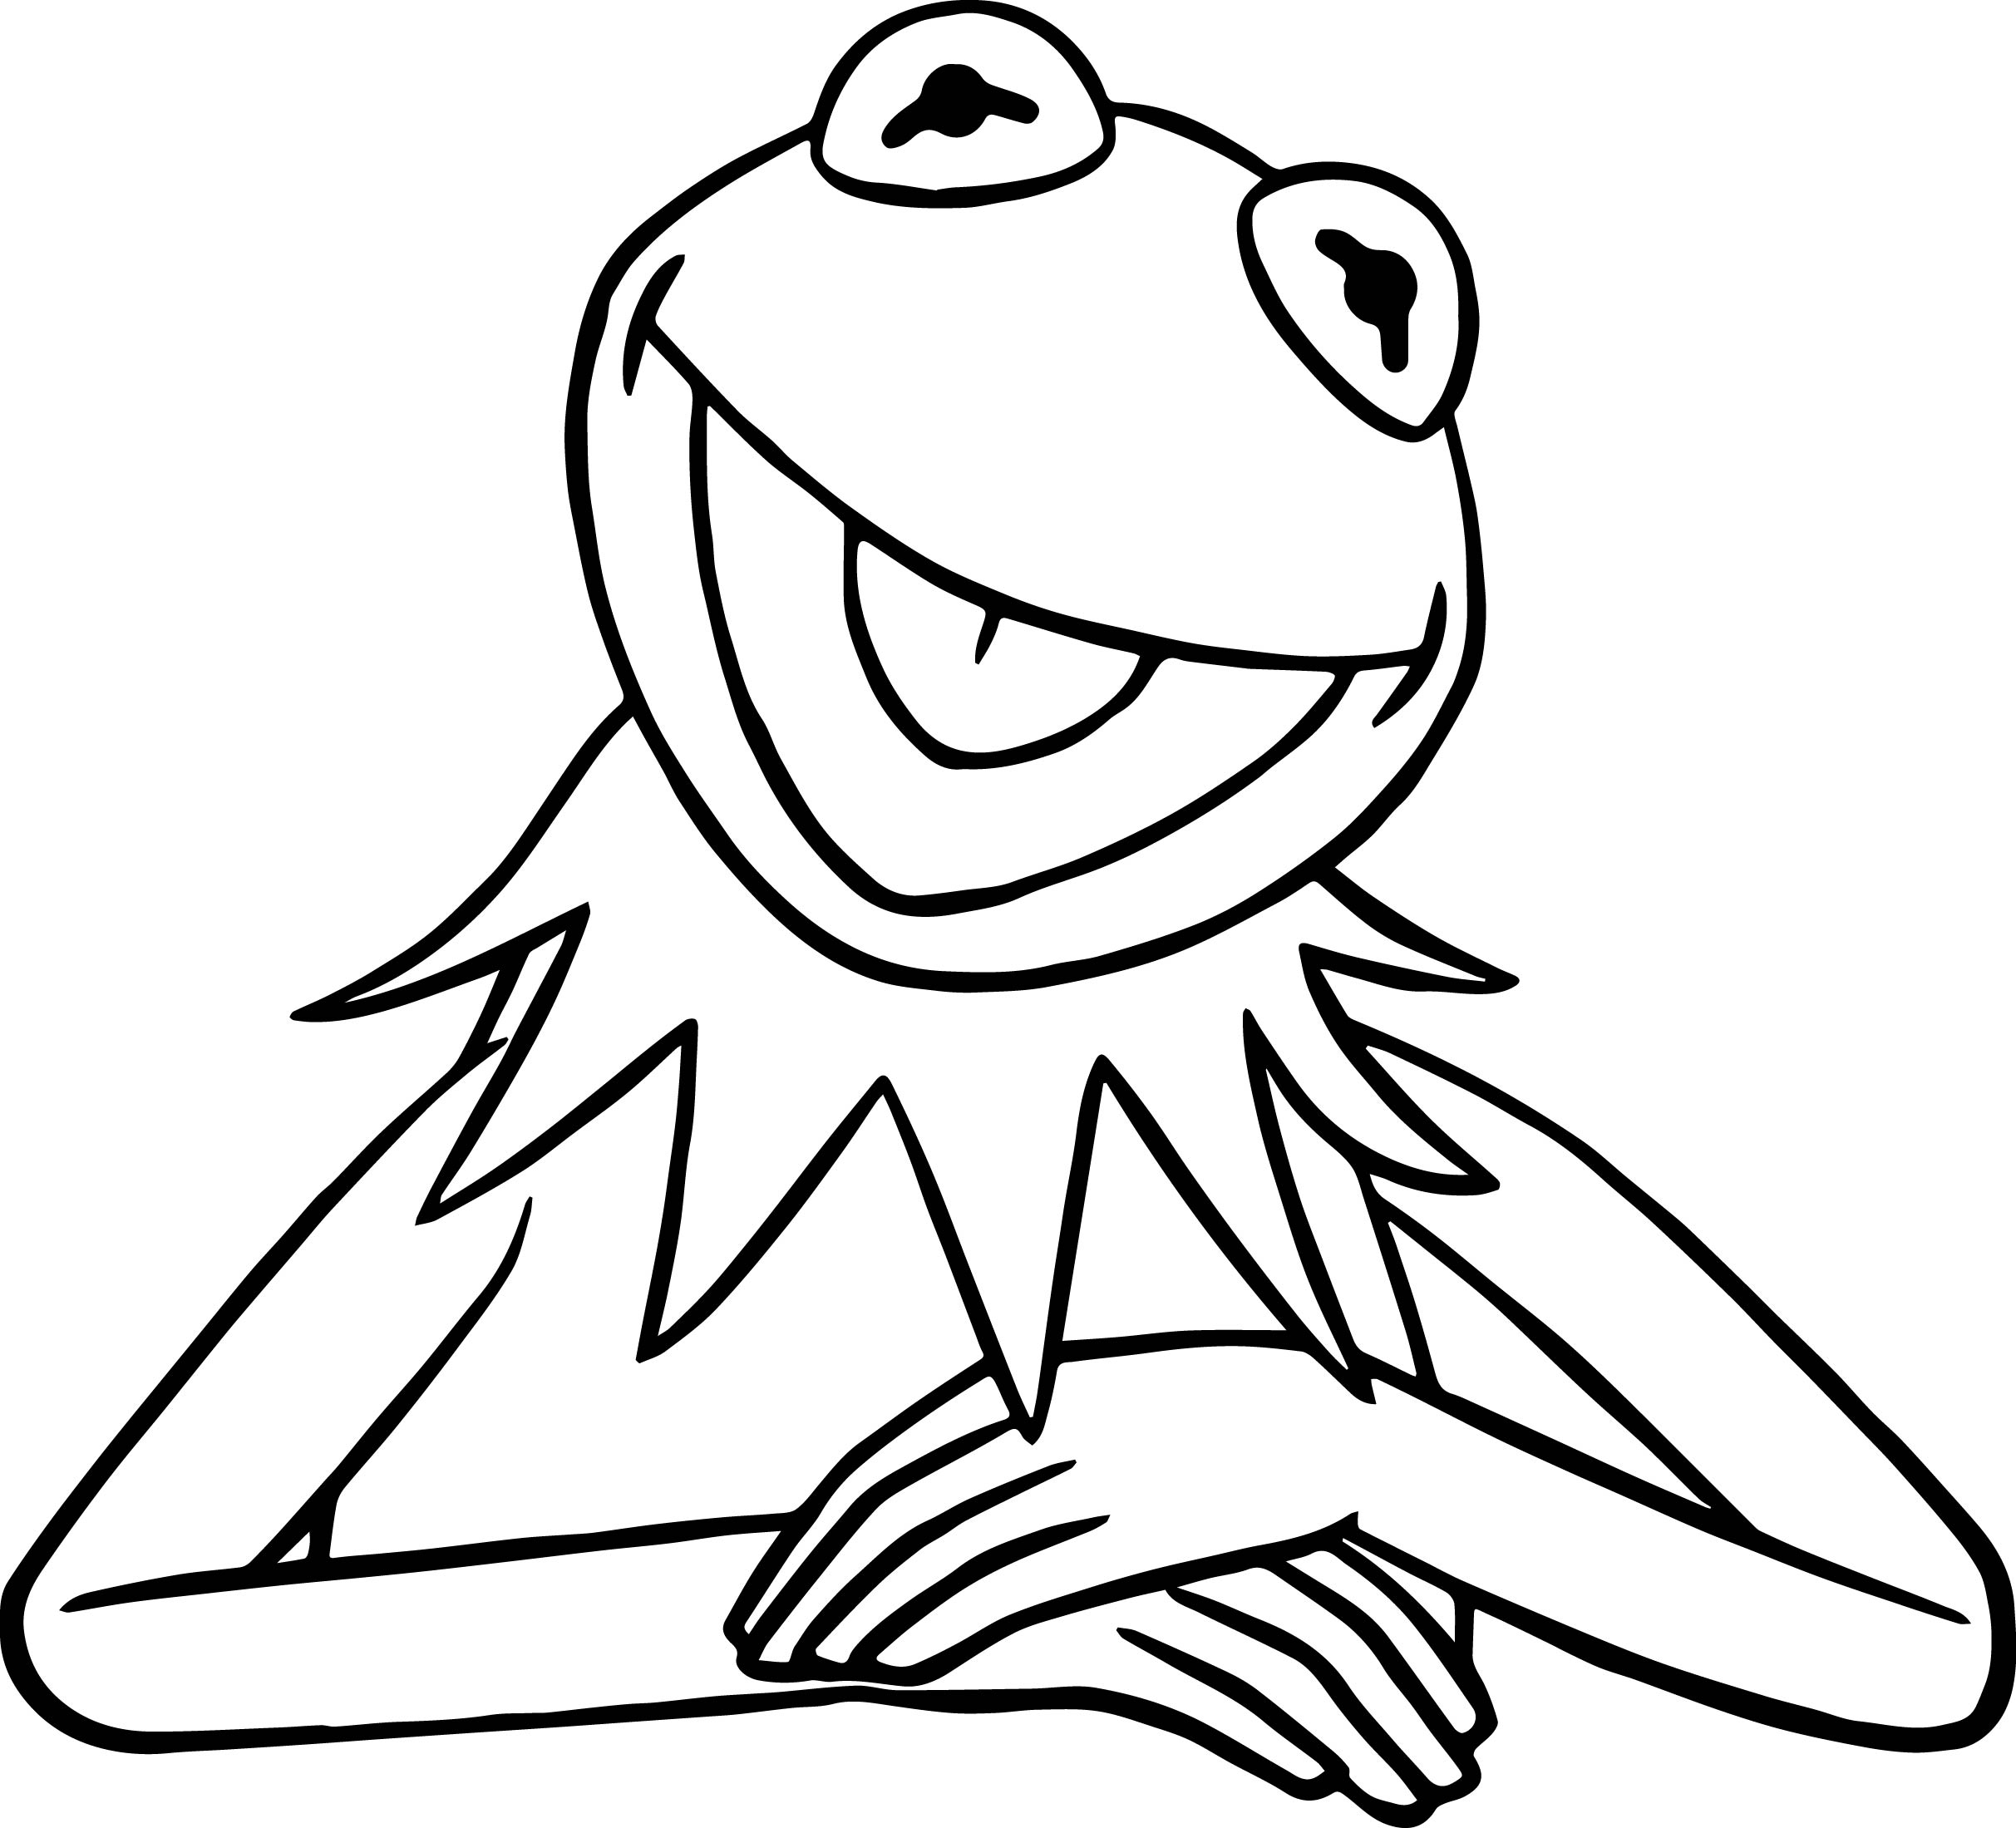 2425x2199 Muppets Coloring Pages Images Free Coloring Pages